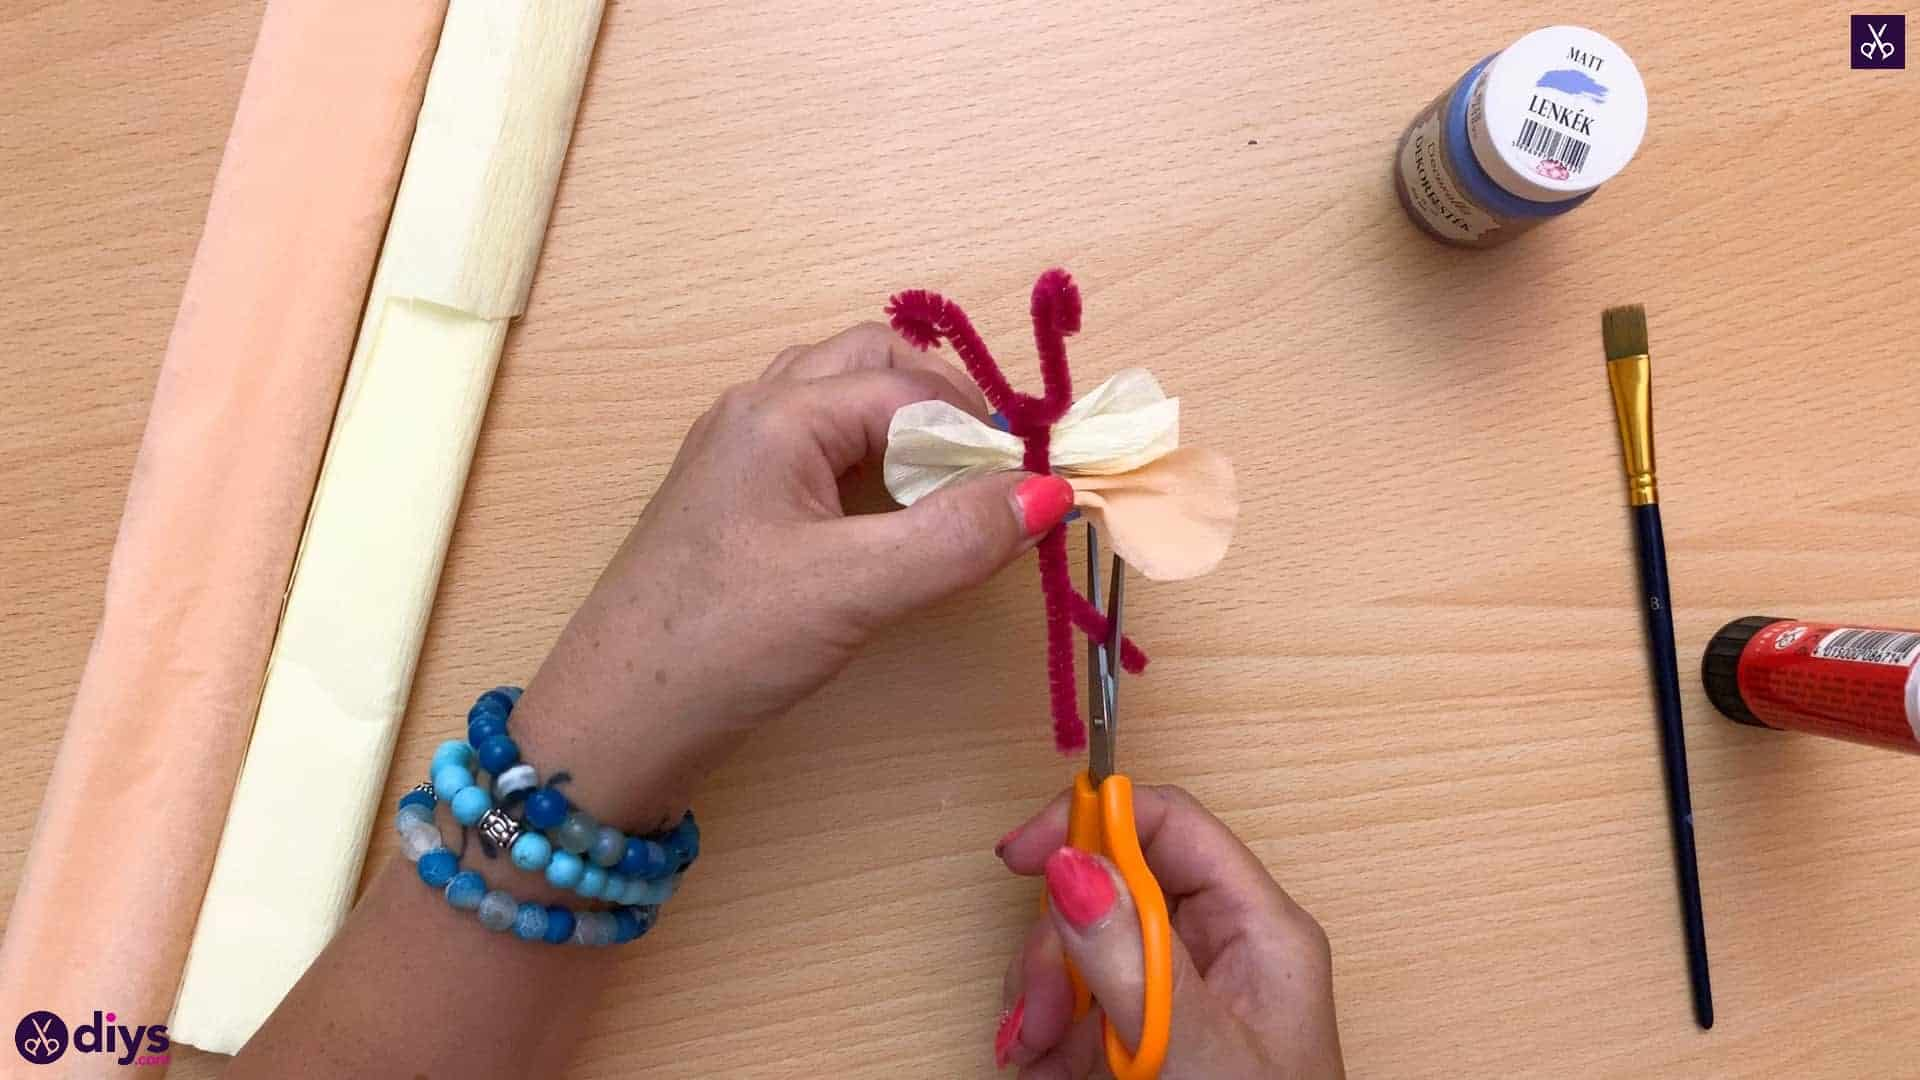 Diy butterfly napkin ring step 11